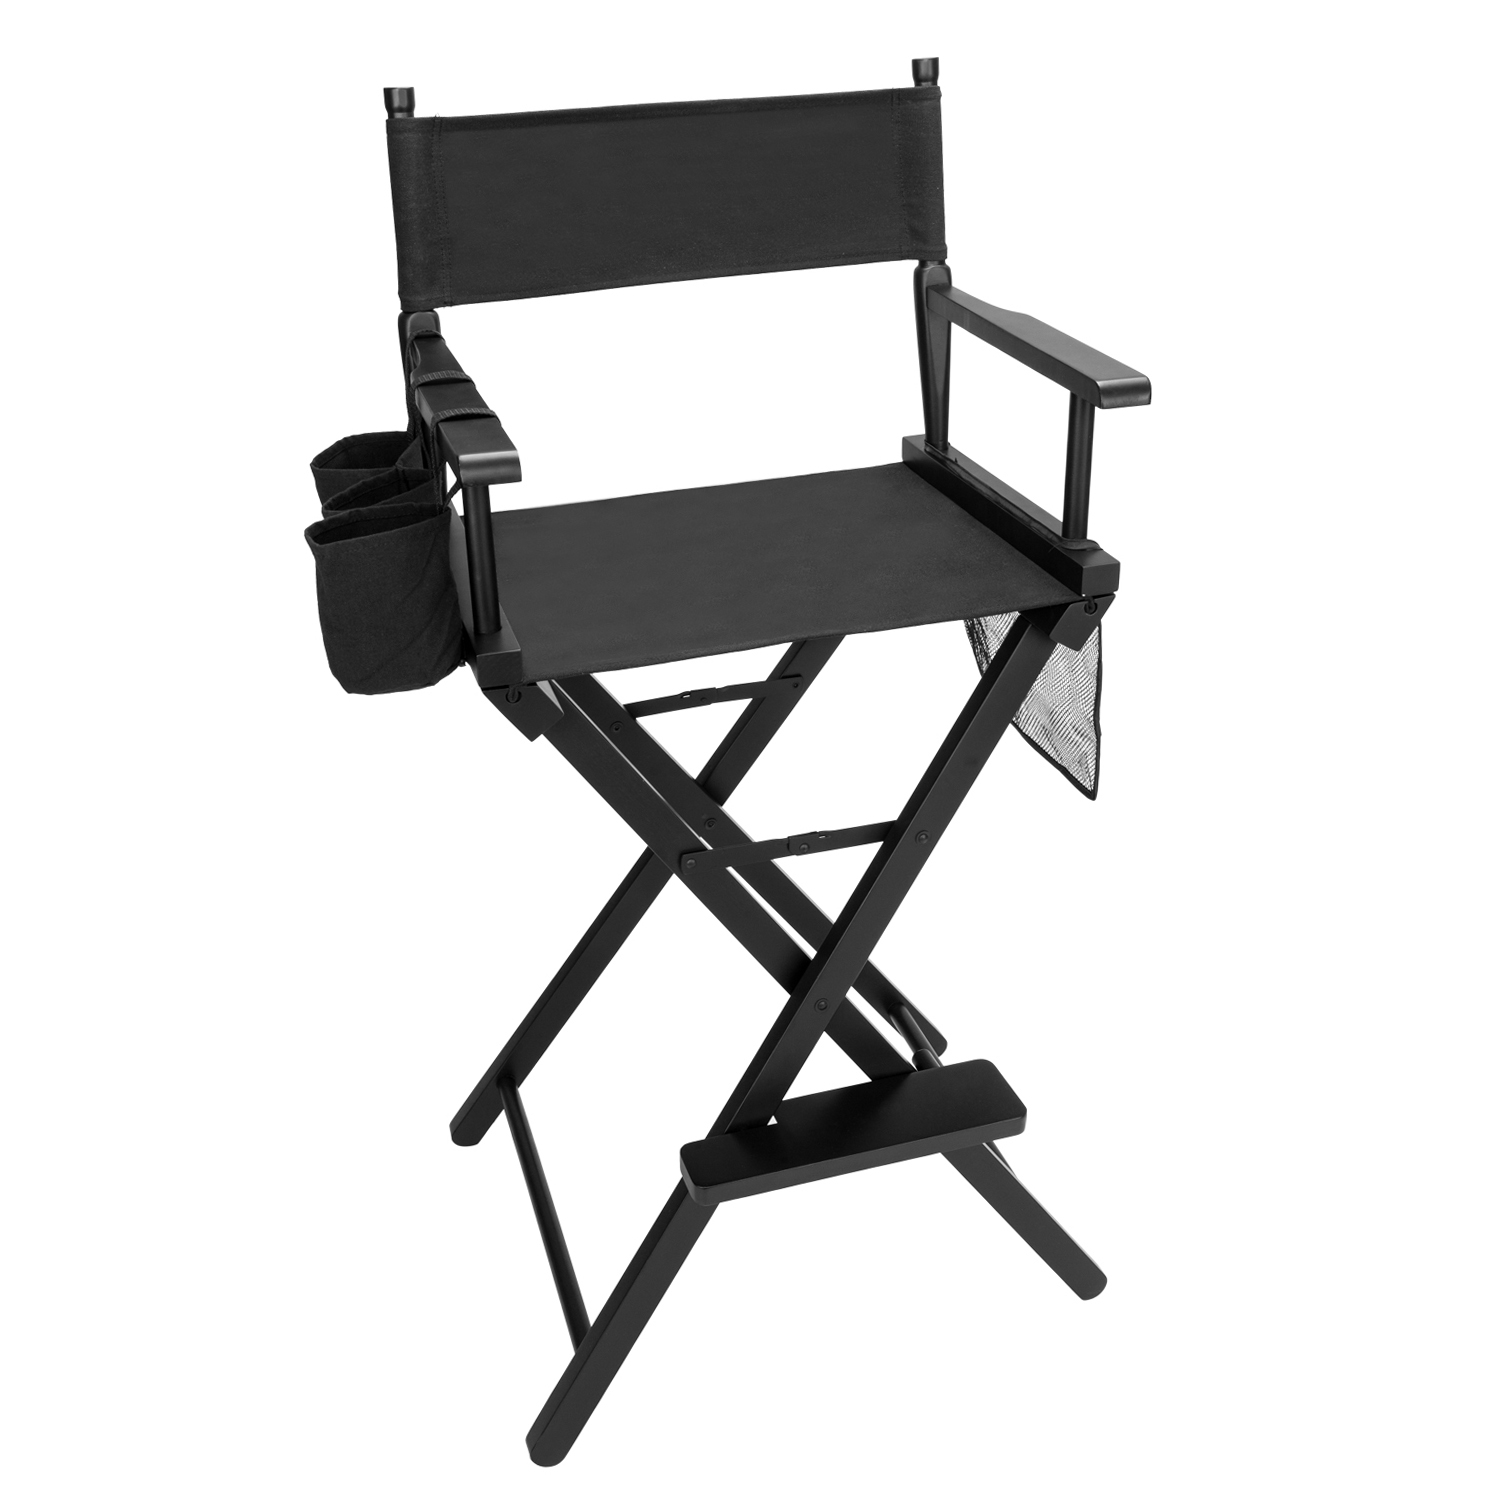 Professional Folding Wood Makeup Comestic Artist Director High Chair Stool Seat